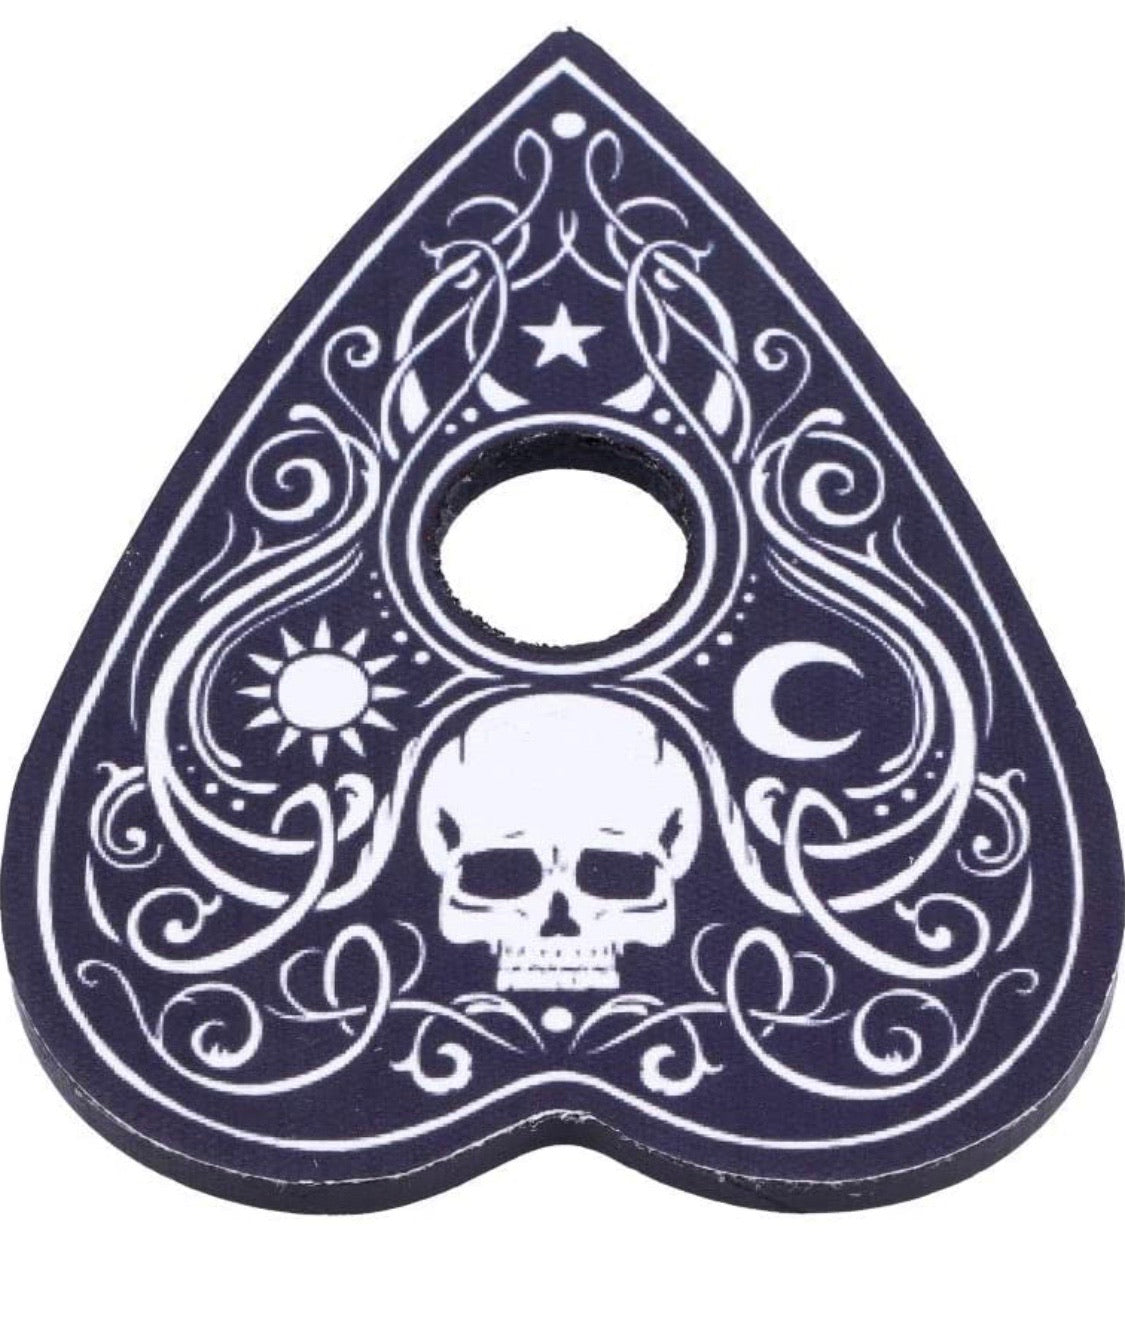 All Hallows' spirit board